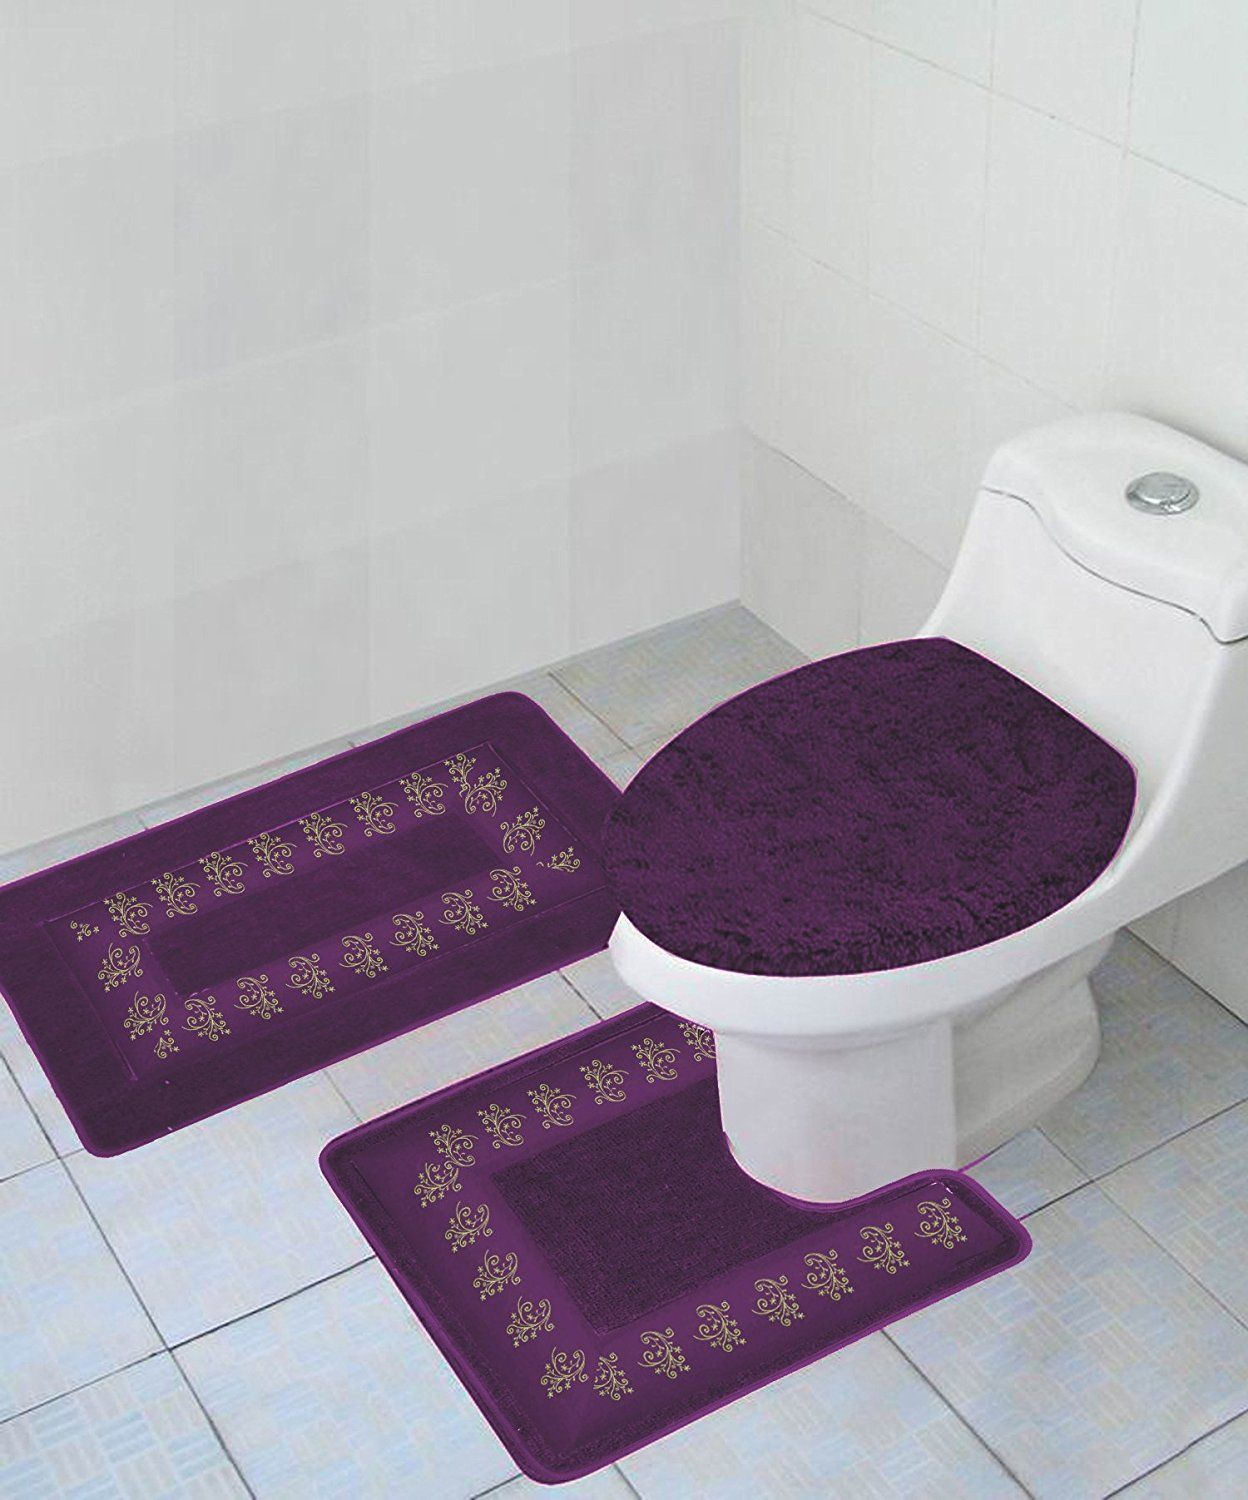 3 Pc 5 Purple Design Bathroom Bath Mat Set Includes 1 Contour Lid Toilet Cover Ultra Absorbent With Anti Slip Backings Walmart Com In 2021 Blue Rugs